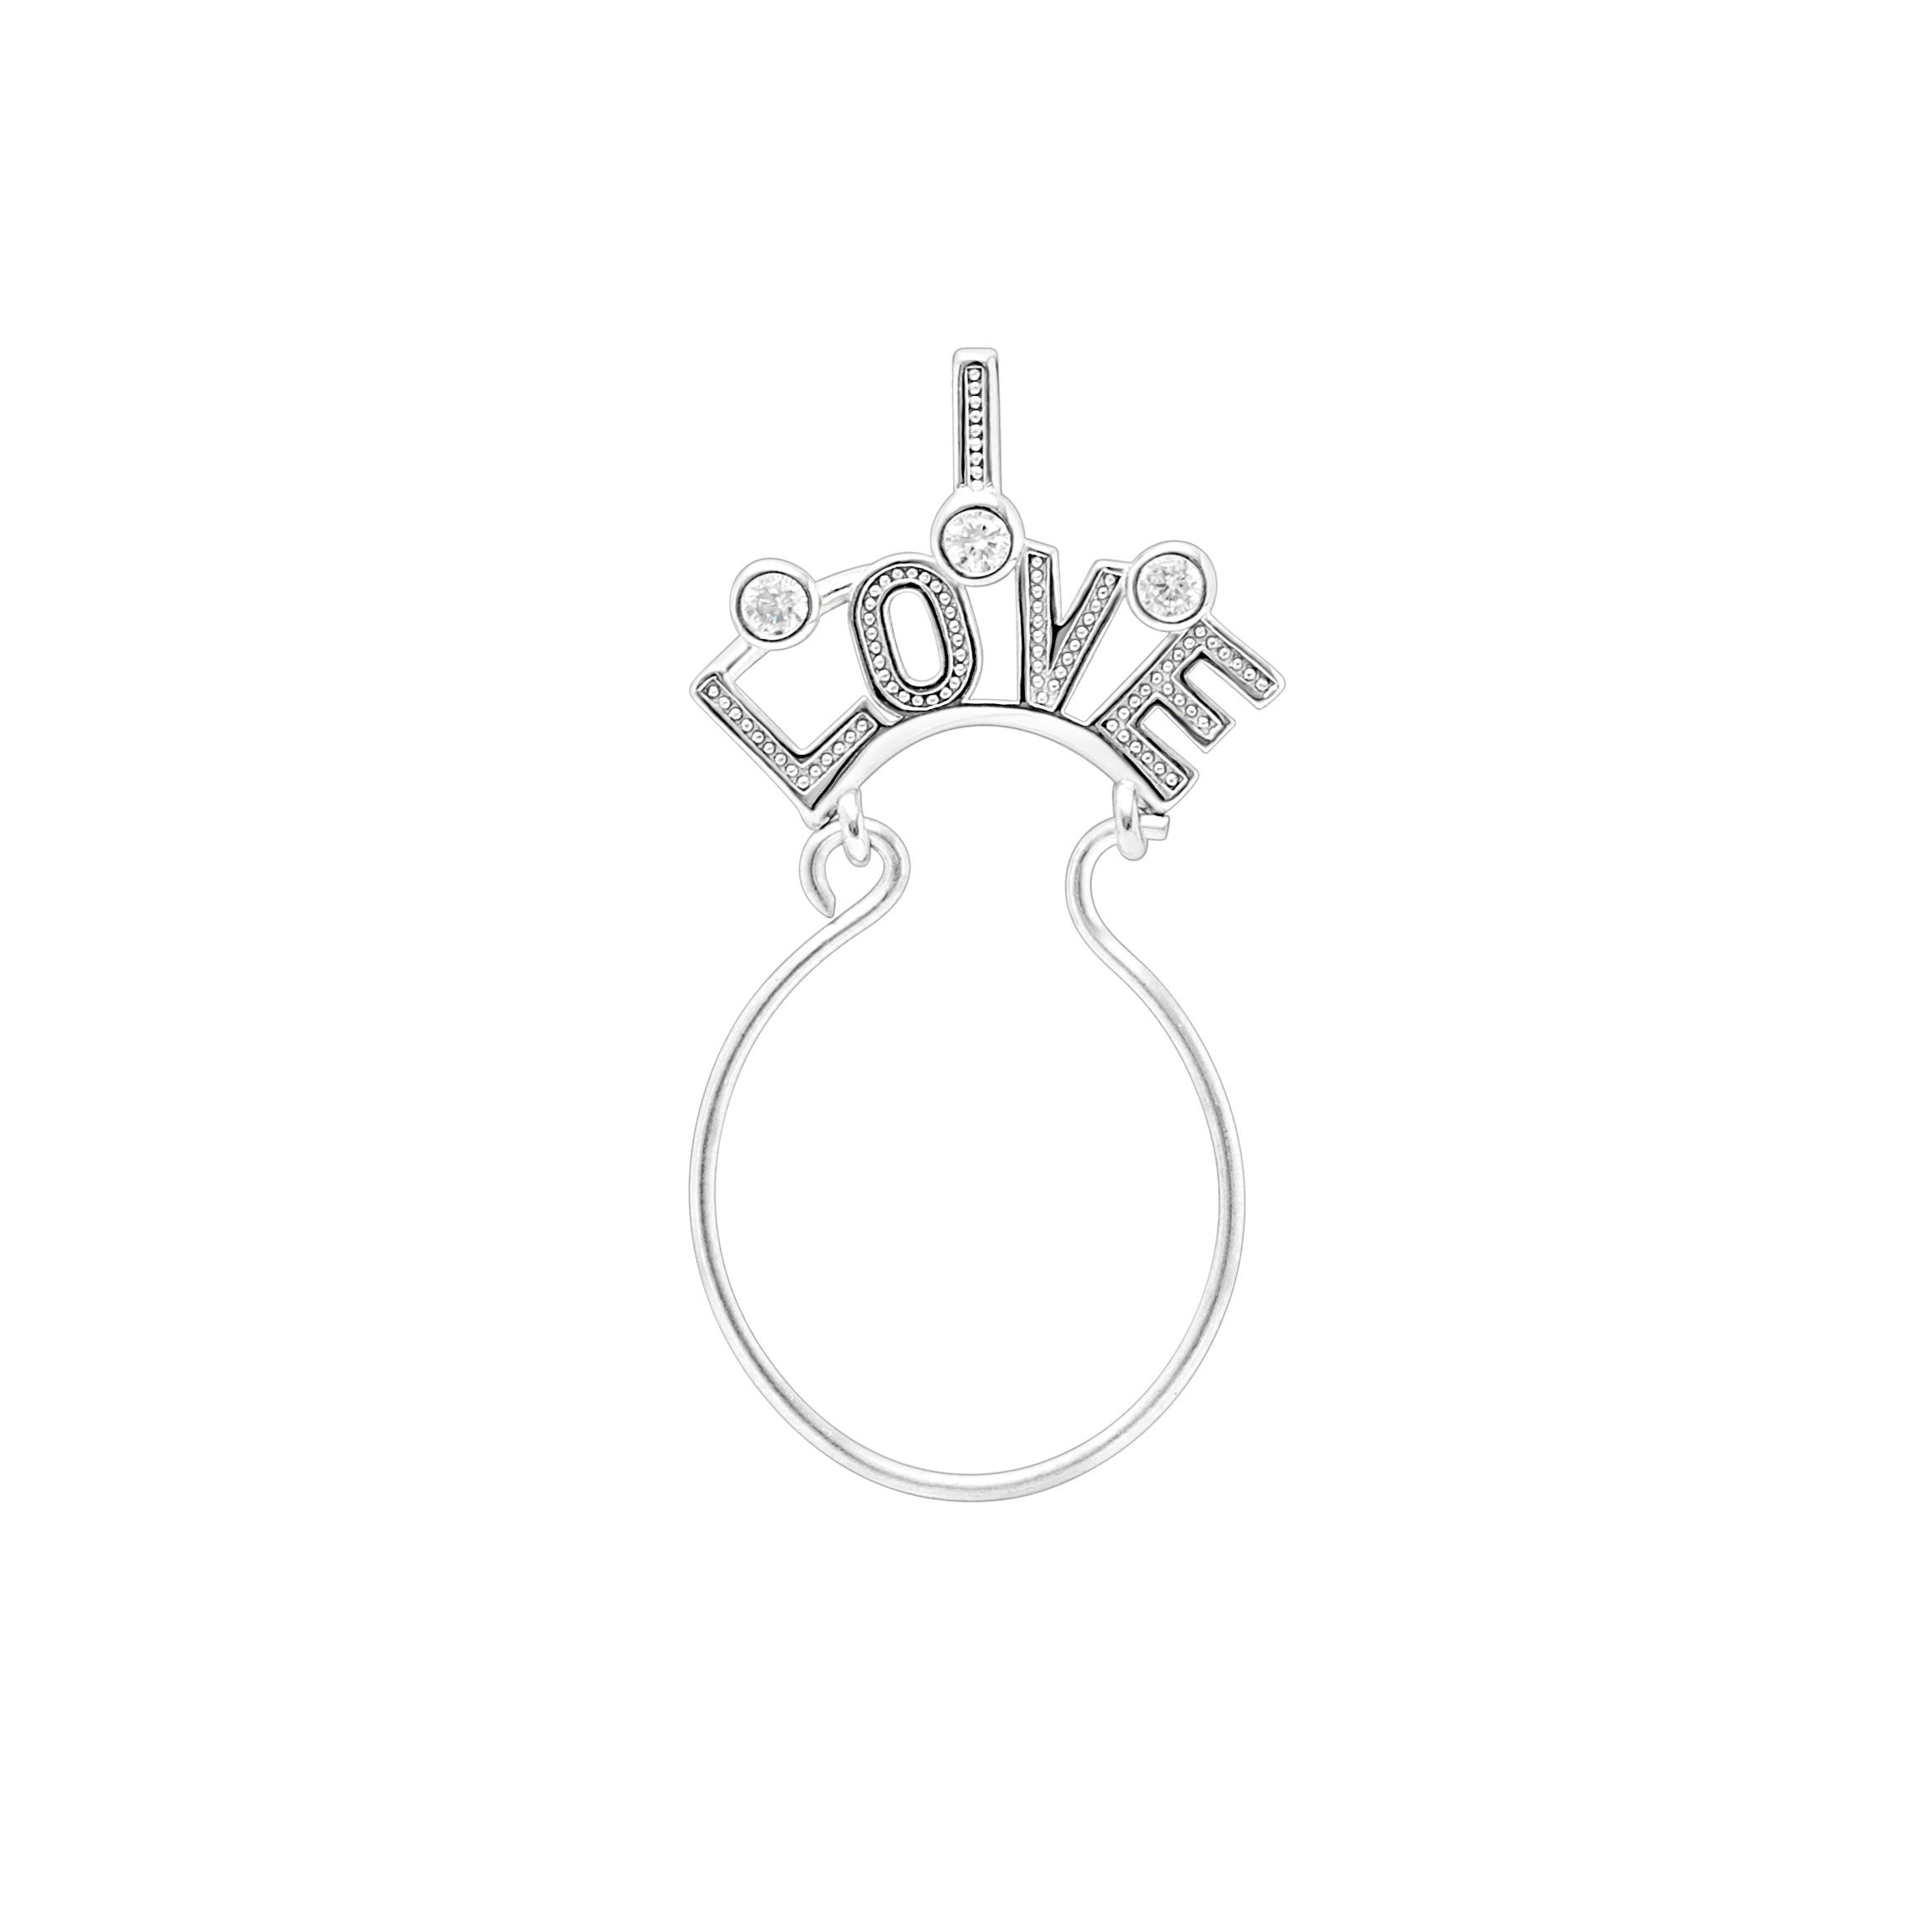 Charm Holder For Necklace By Ginger Lyne Collection|Sterling Silver|Mom Grandma Wife Love|Gift New Mothers